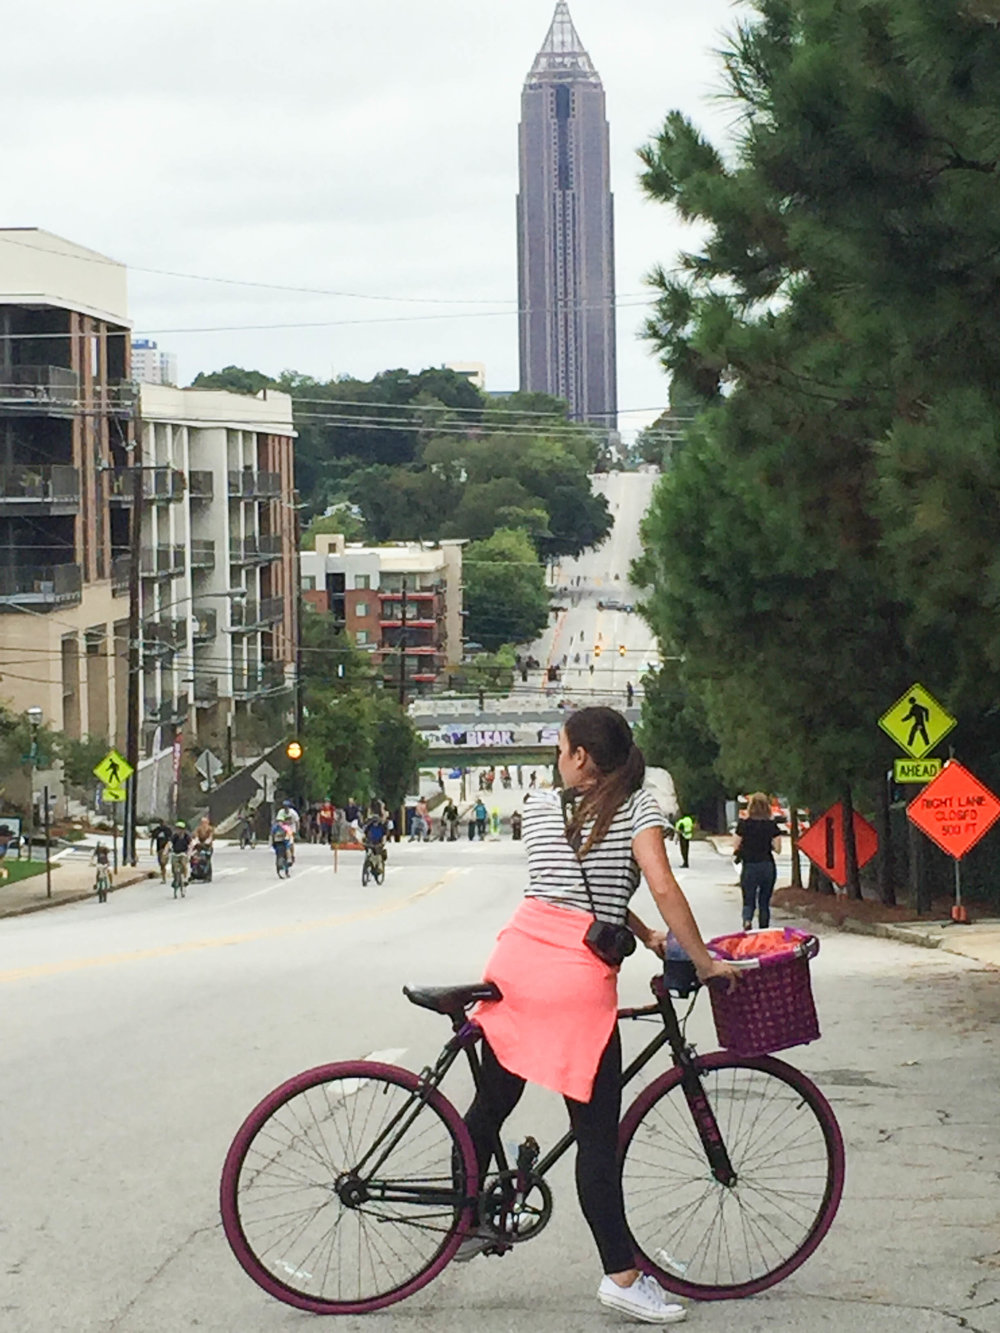 Back in Atlanta on our old street. See Atlanta Street's Alive post for more details on this day.